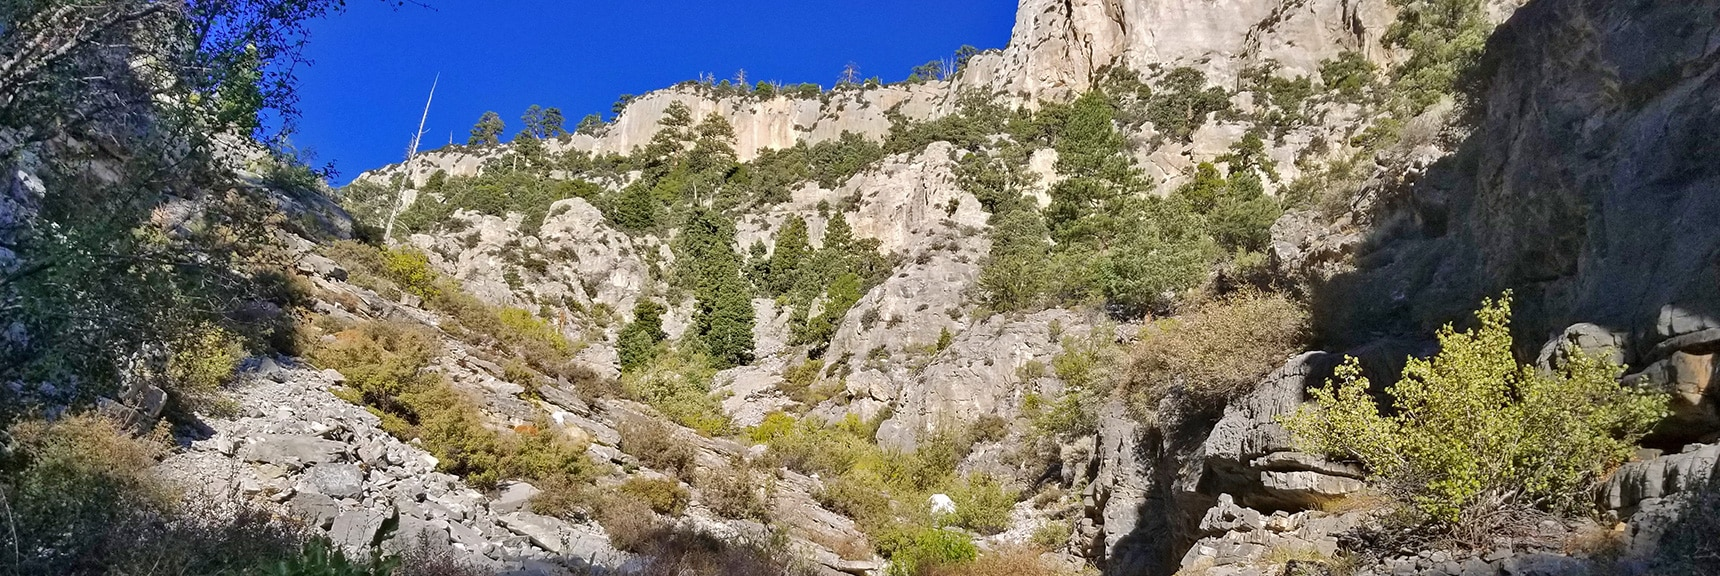 View Up Rocky Elevation Gain in Lower Robbers Roost Canyon   Fletcher Peak from Robbers Roost   Spring Mountains, Nevada